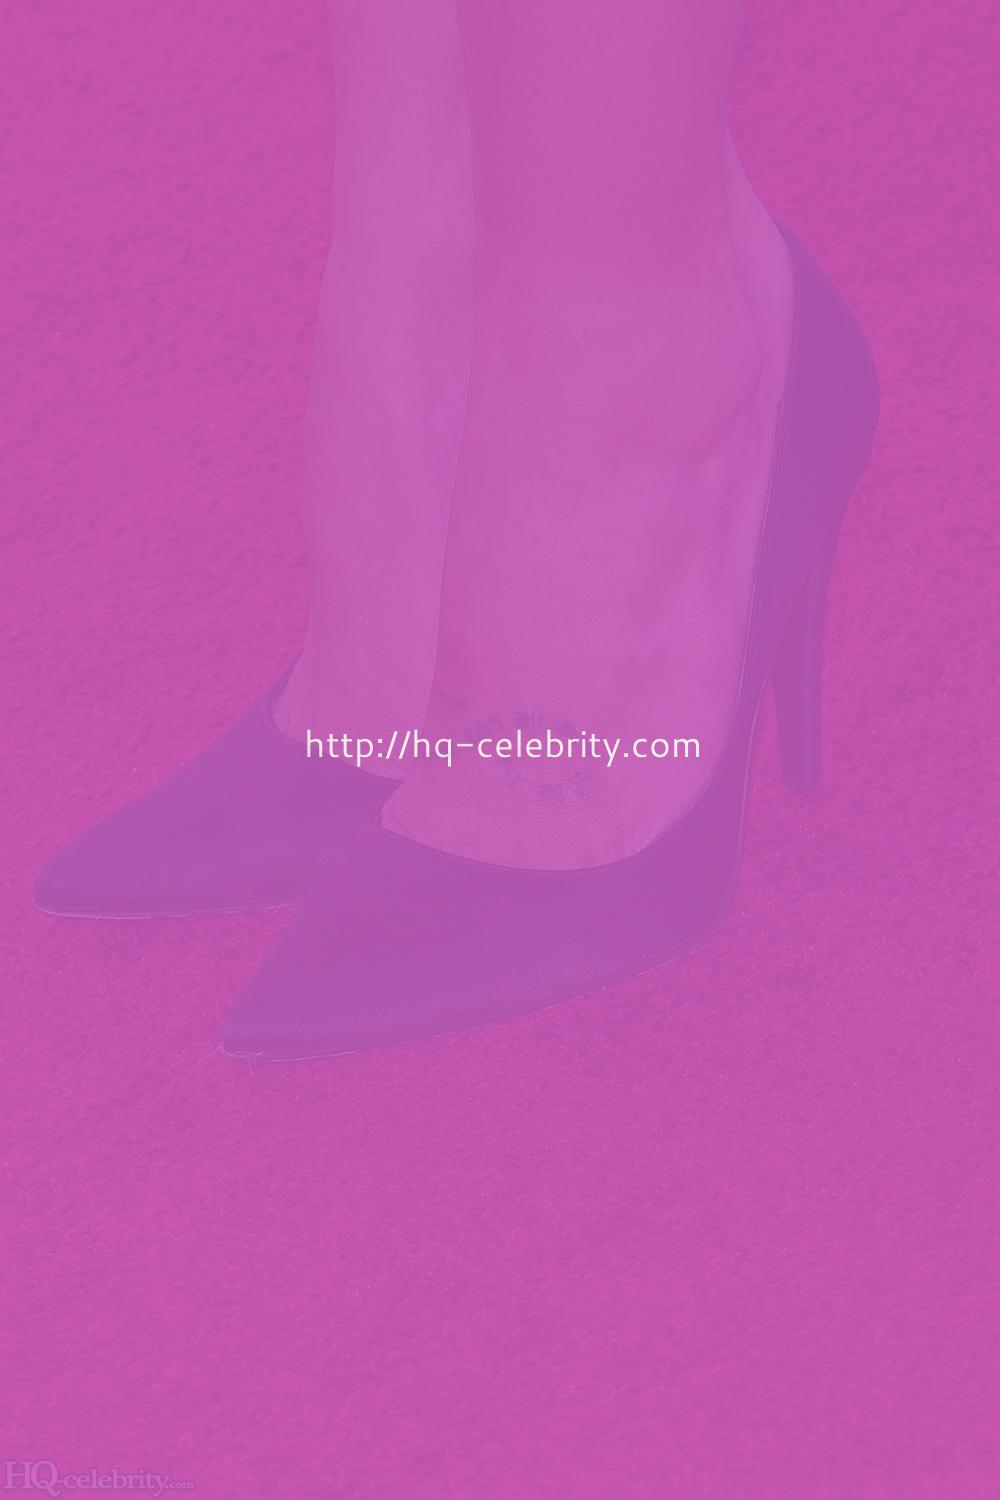 Hq celebrity feet pictures